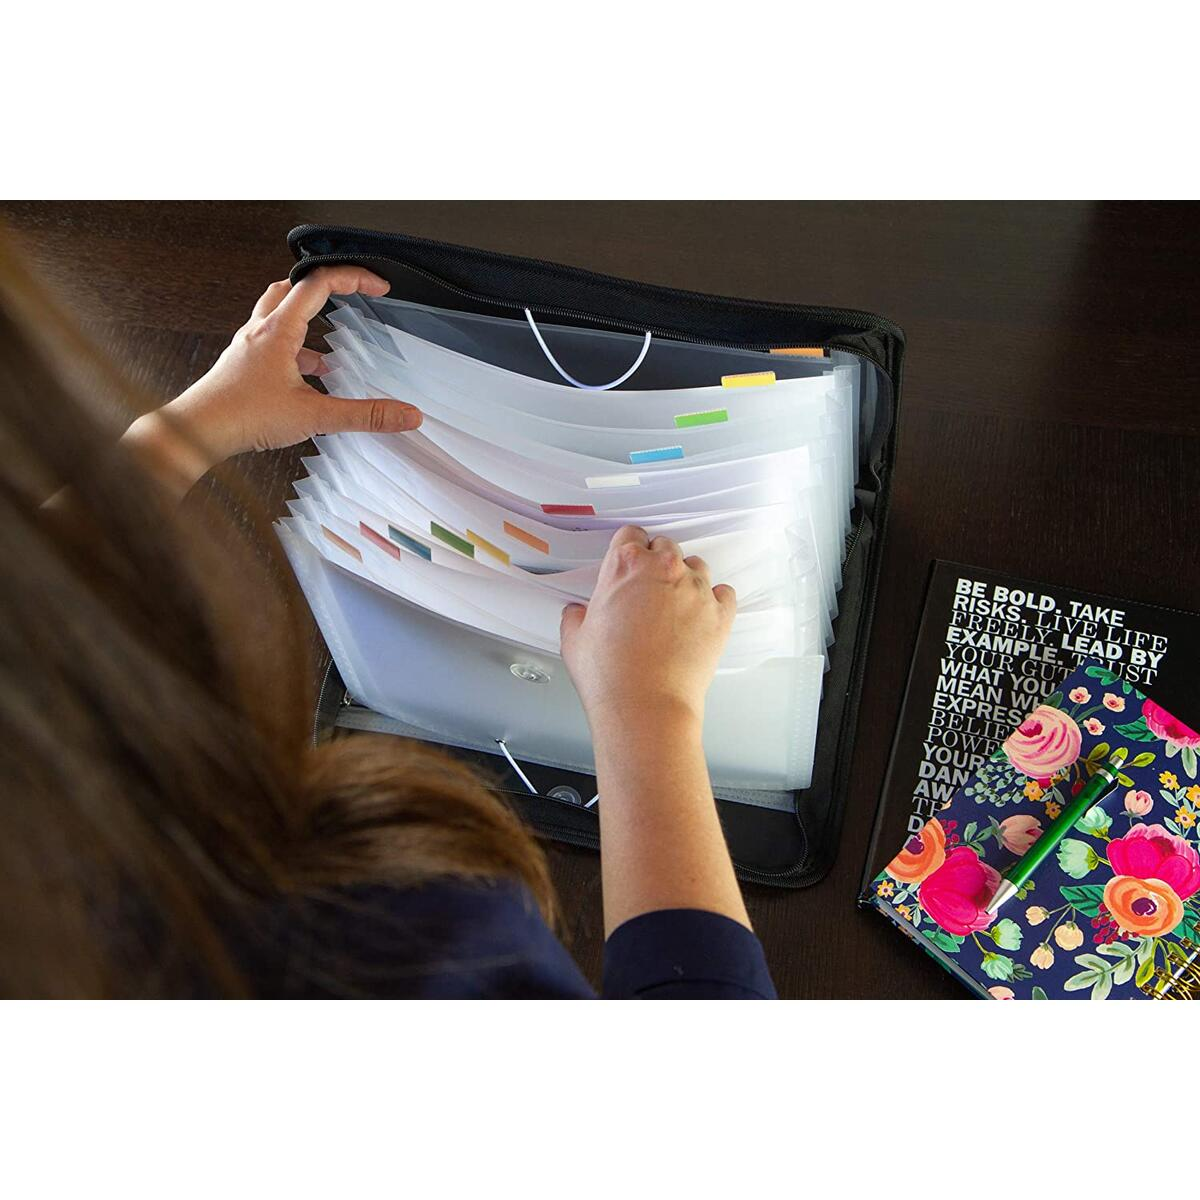 Accordian File Organizer – Most Durable Expanding File Folder with Zipper Closure. Elegant Design With 13 Pockets Accordion Folder and 4 Storage Pockets, Handle A4 & Family Bill Paperwork Documents